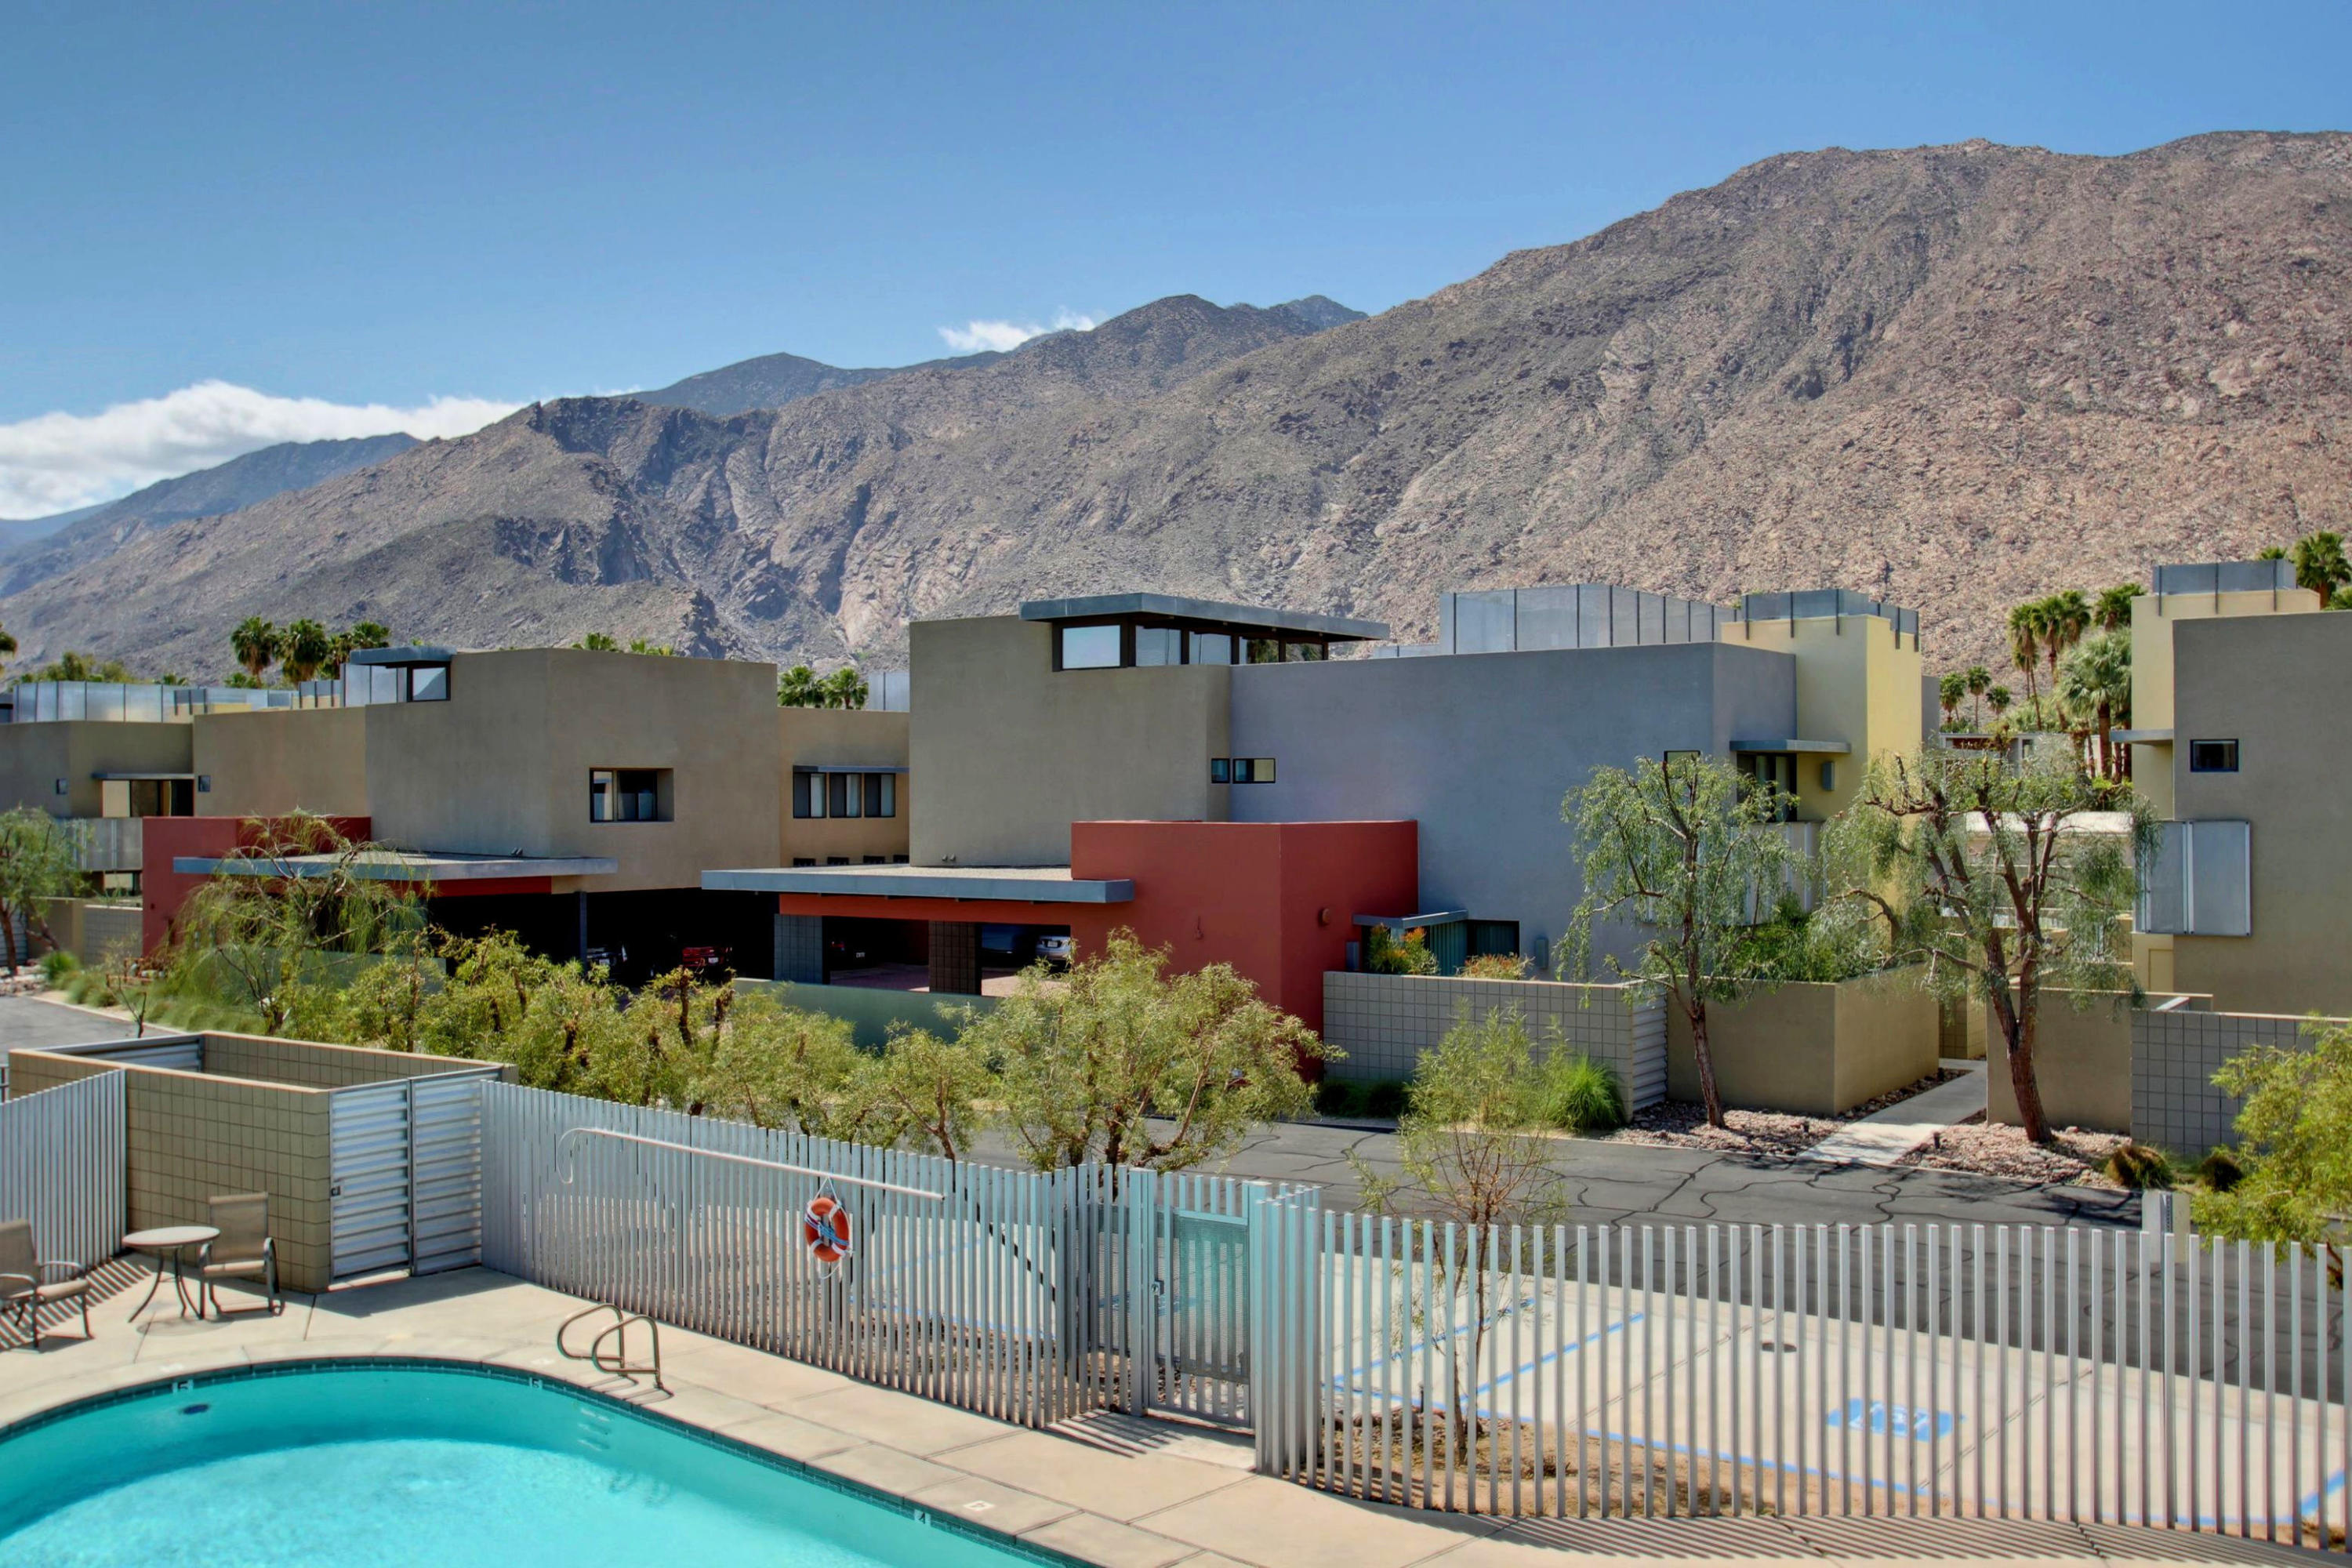 681 E Arenas Road, Palm Springs, California 92262, 2 Bedrooms Bedrooms, ,3 BathroomsBathrooms,Residential,For Sale,681 E Arenas Road,219037566